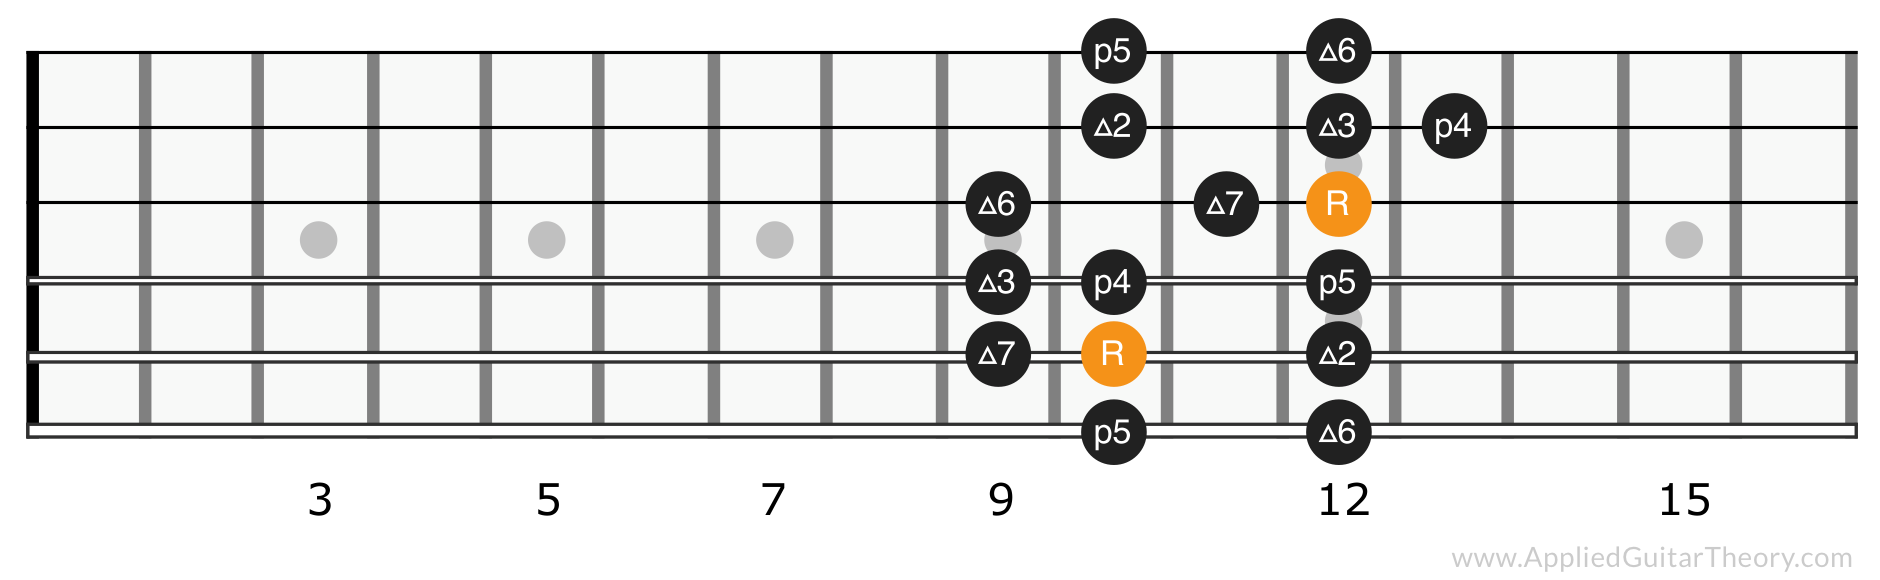 Major scale position 4